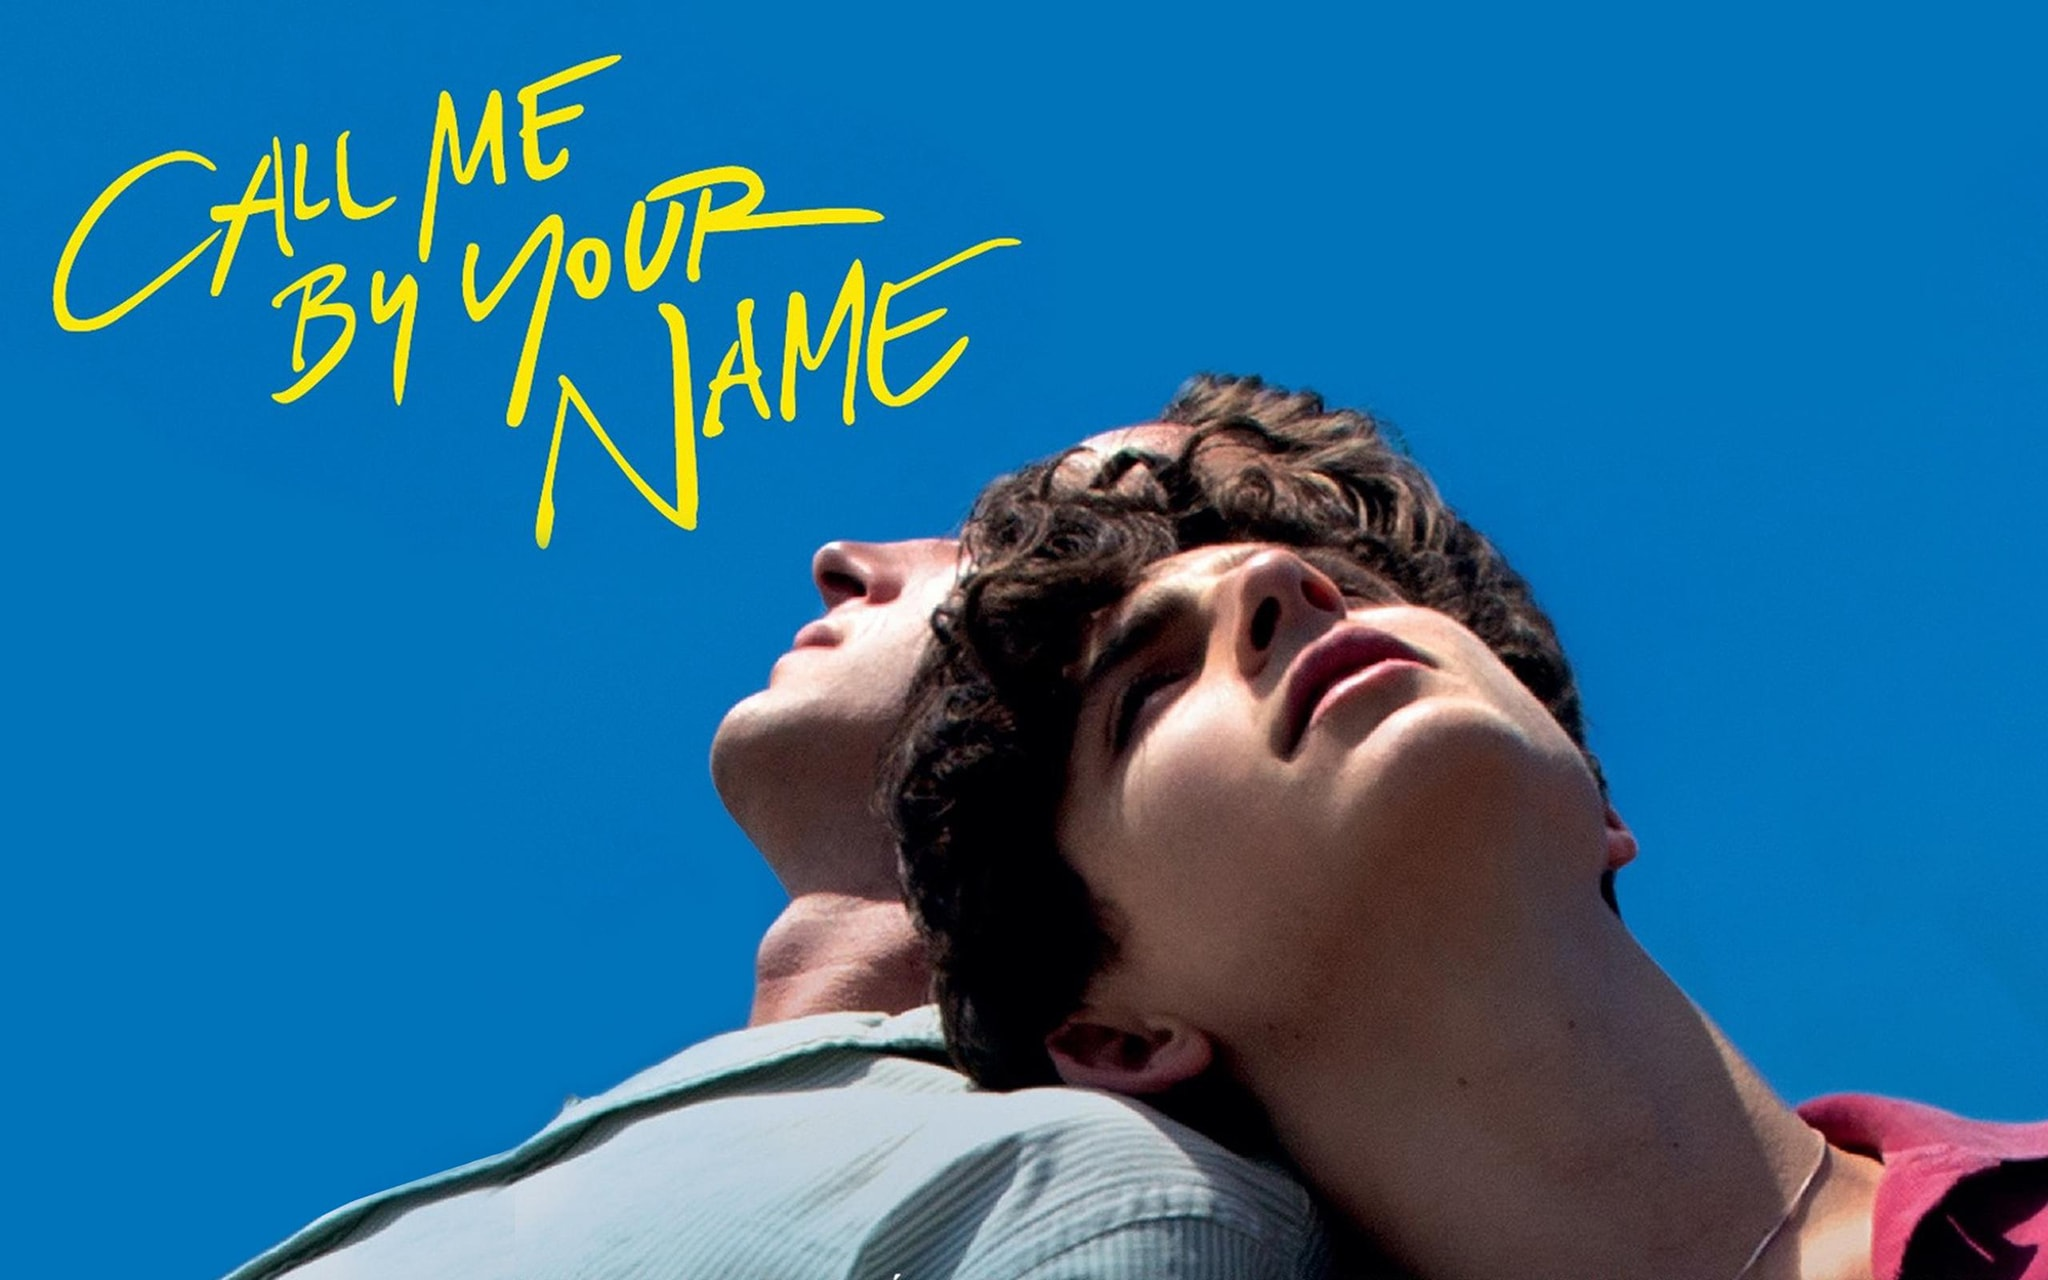 'Call Me By Your Name' w/ Pride Society